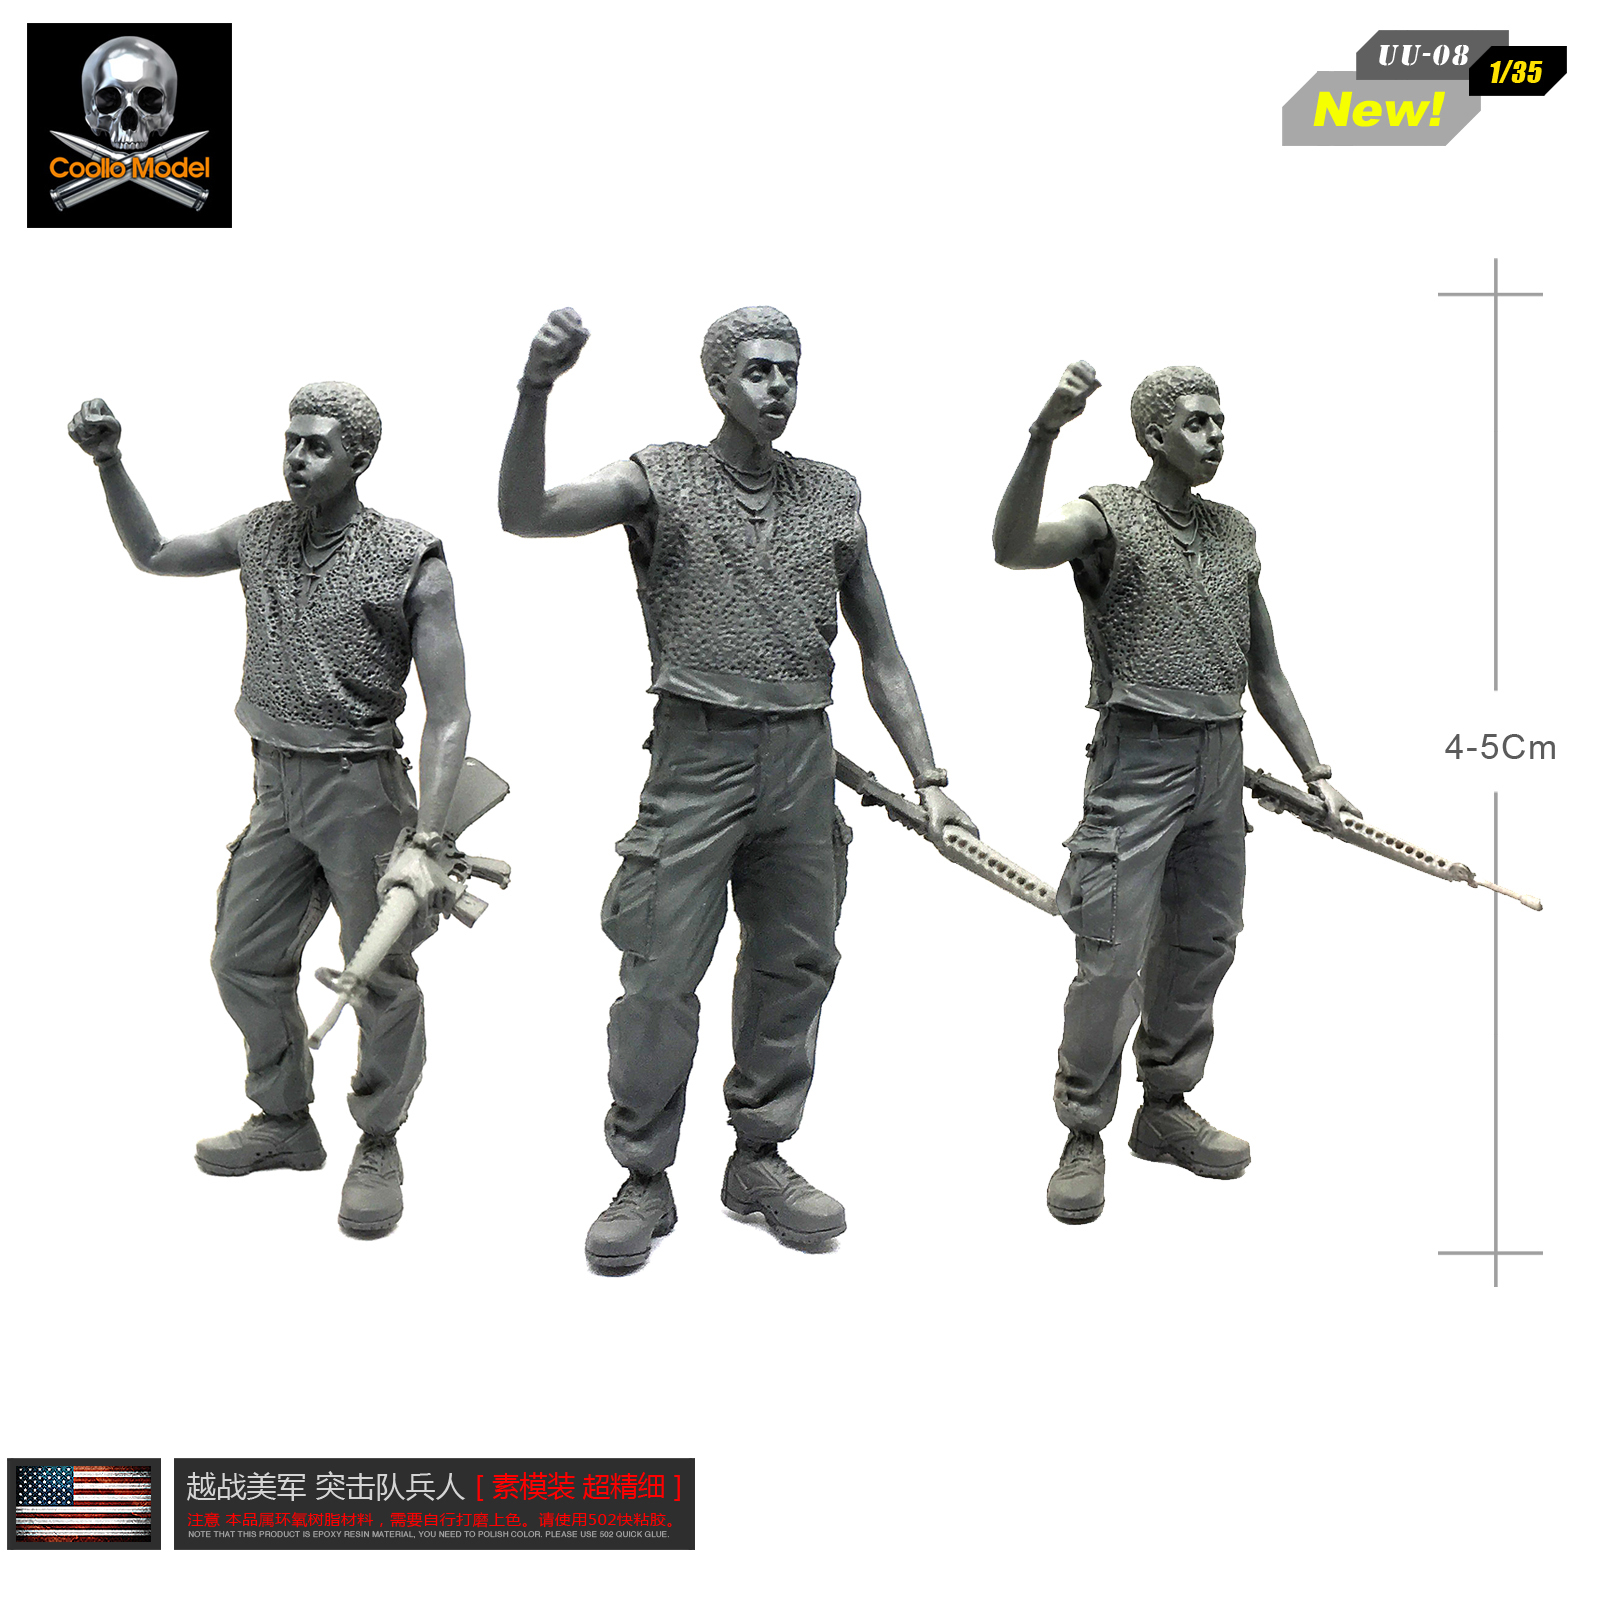 1/35 Vietnam War U. S. Marine Corps Resin-Man Model Black Soldier UU-08 image